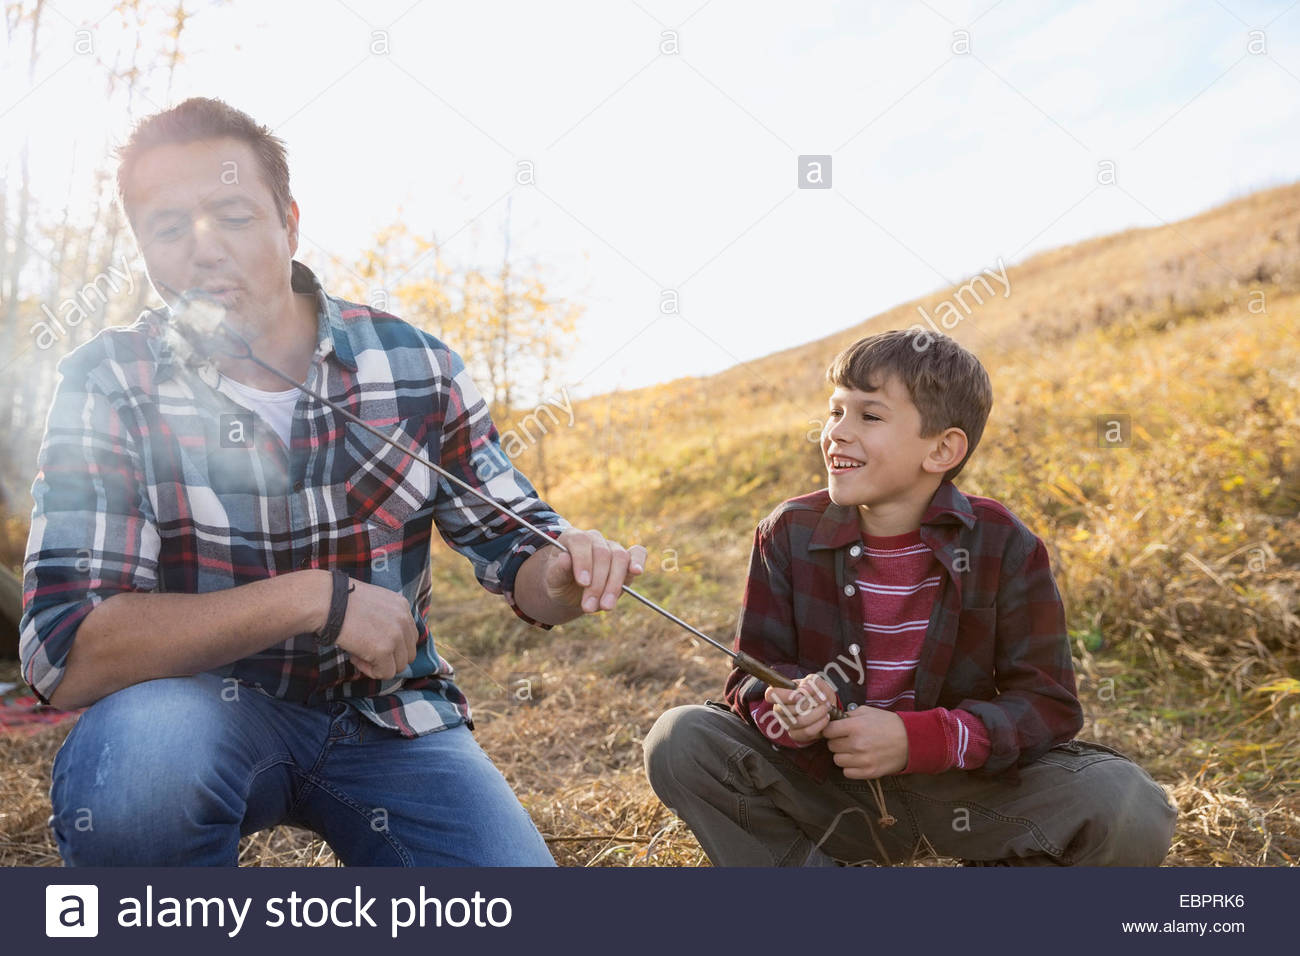 Father and son roasting marshmallows - Stock Image